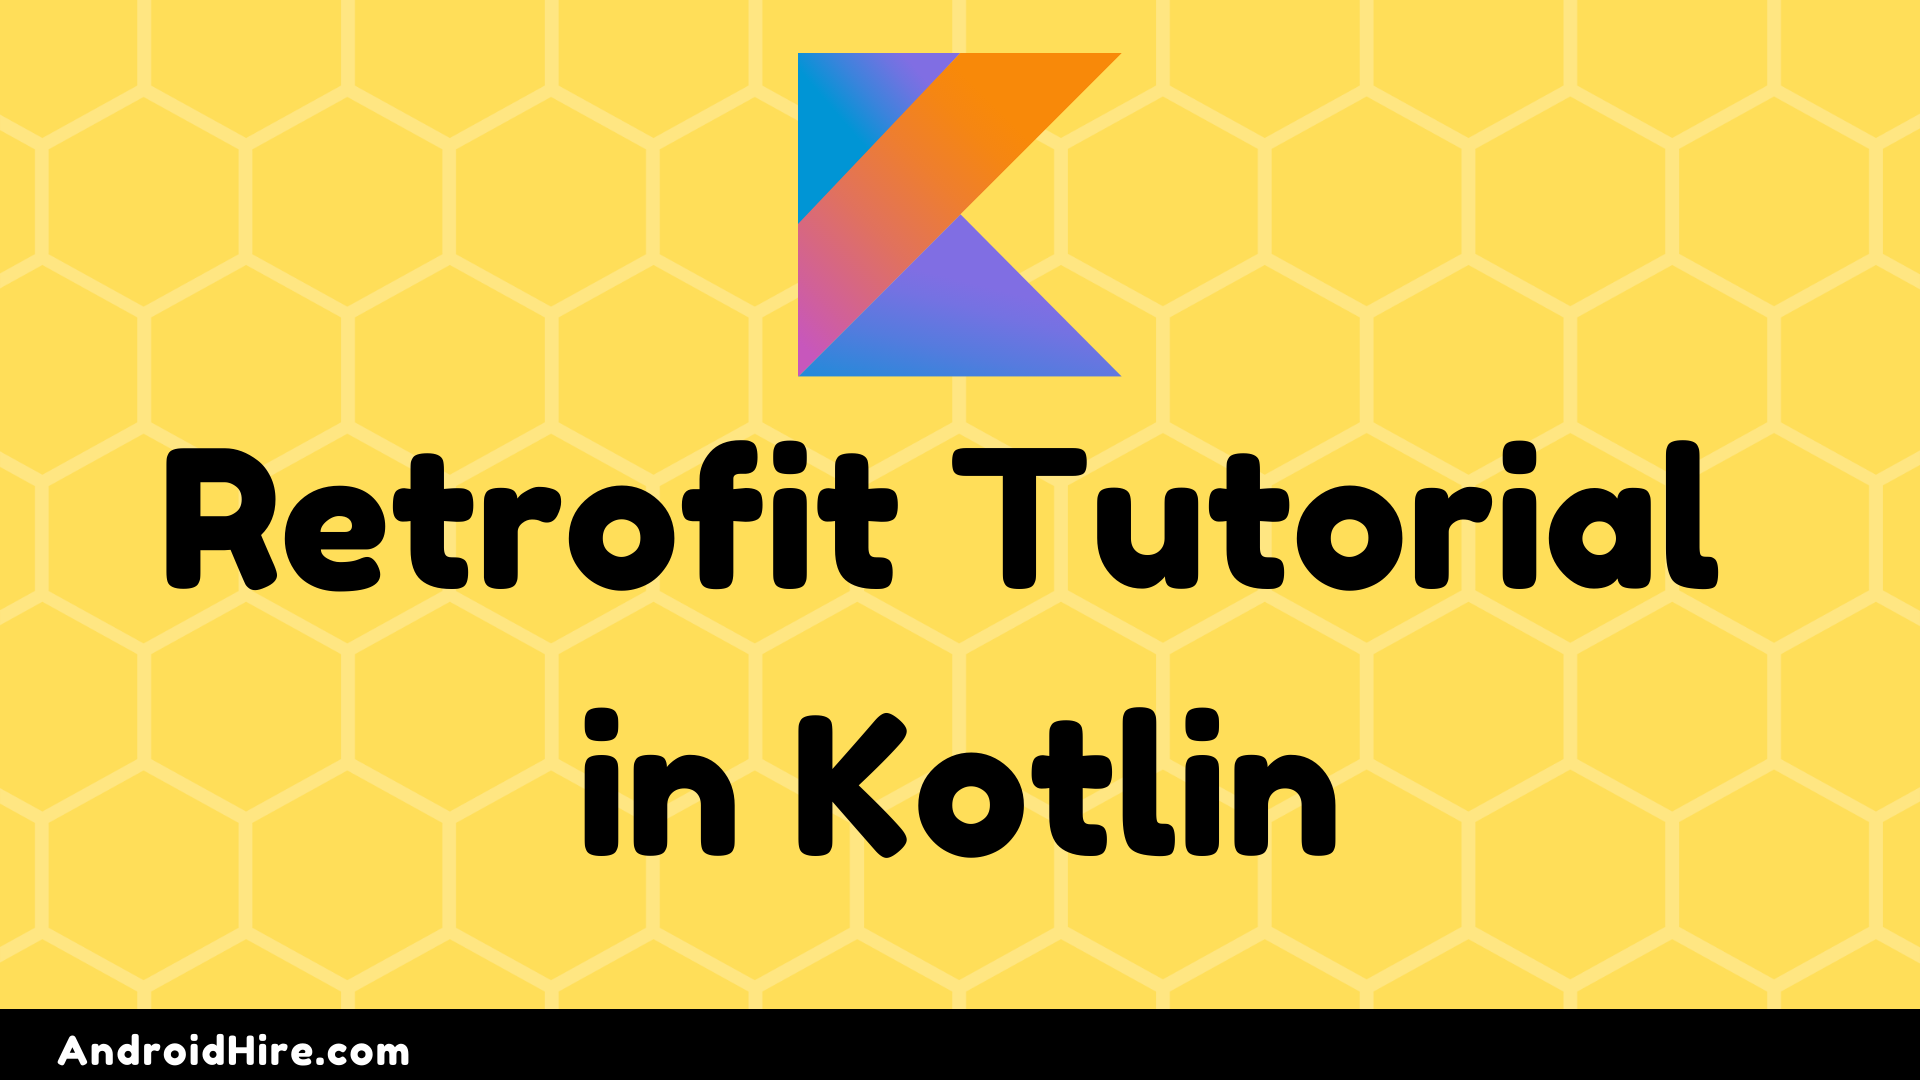 Retrofit Tutorial in Kotlin